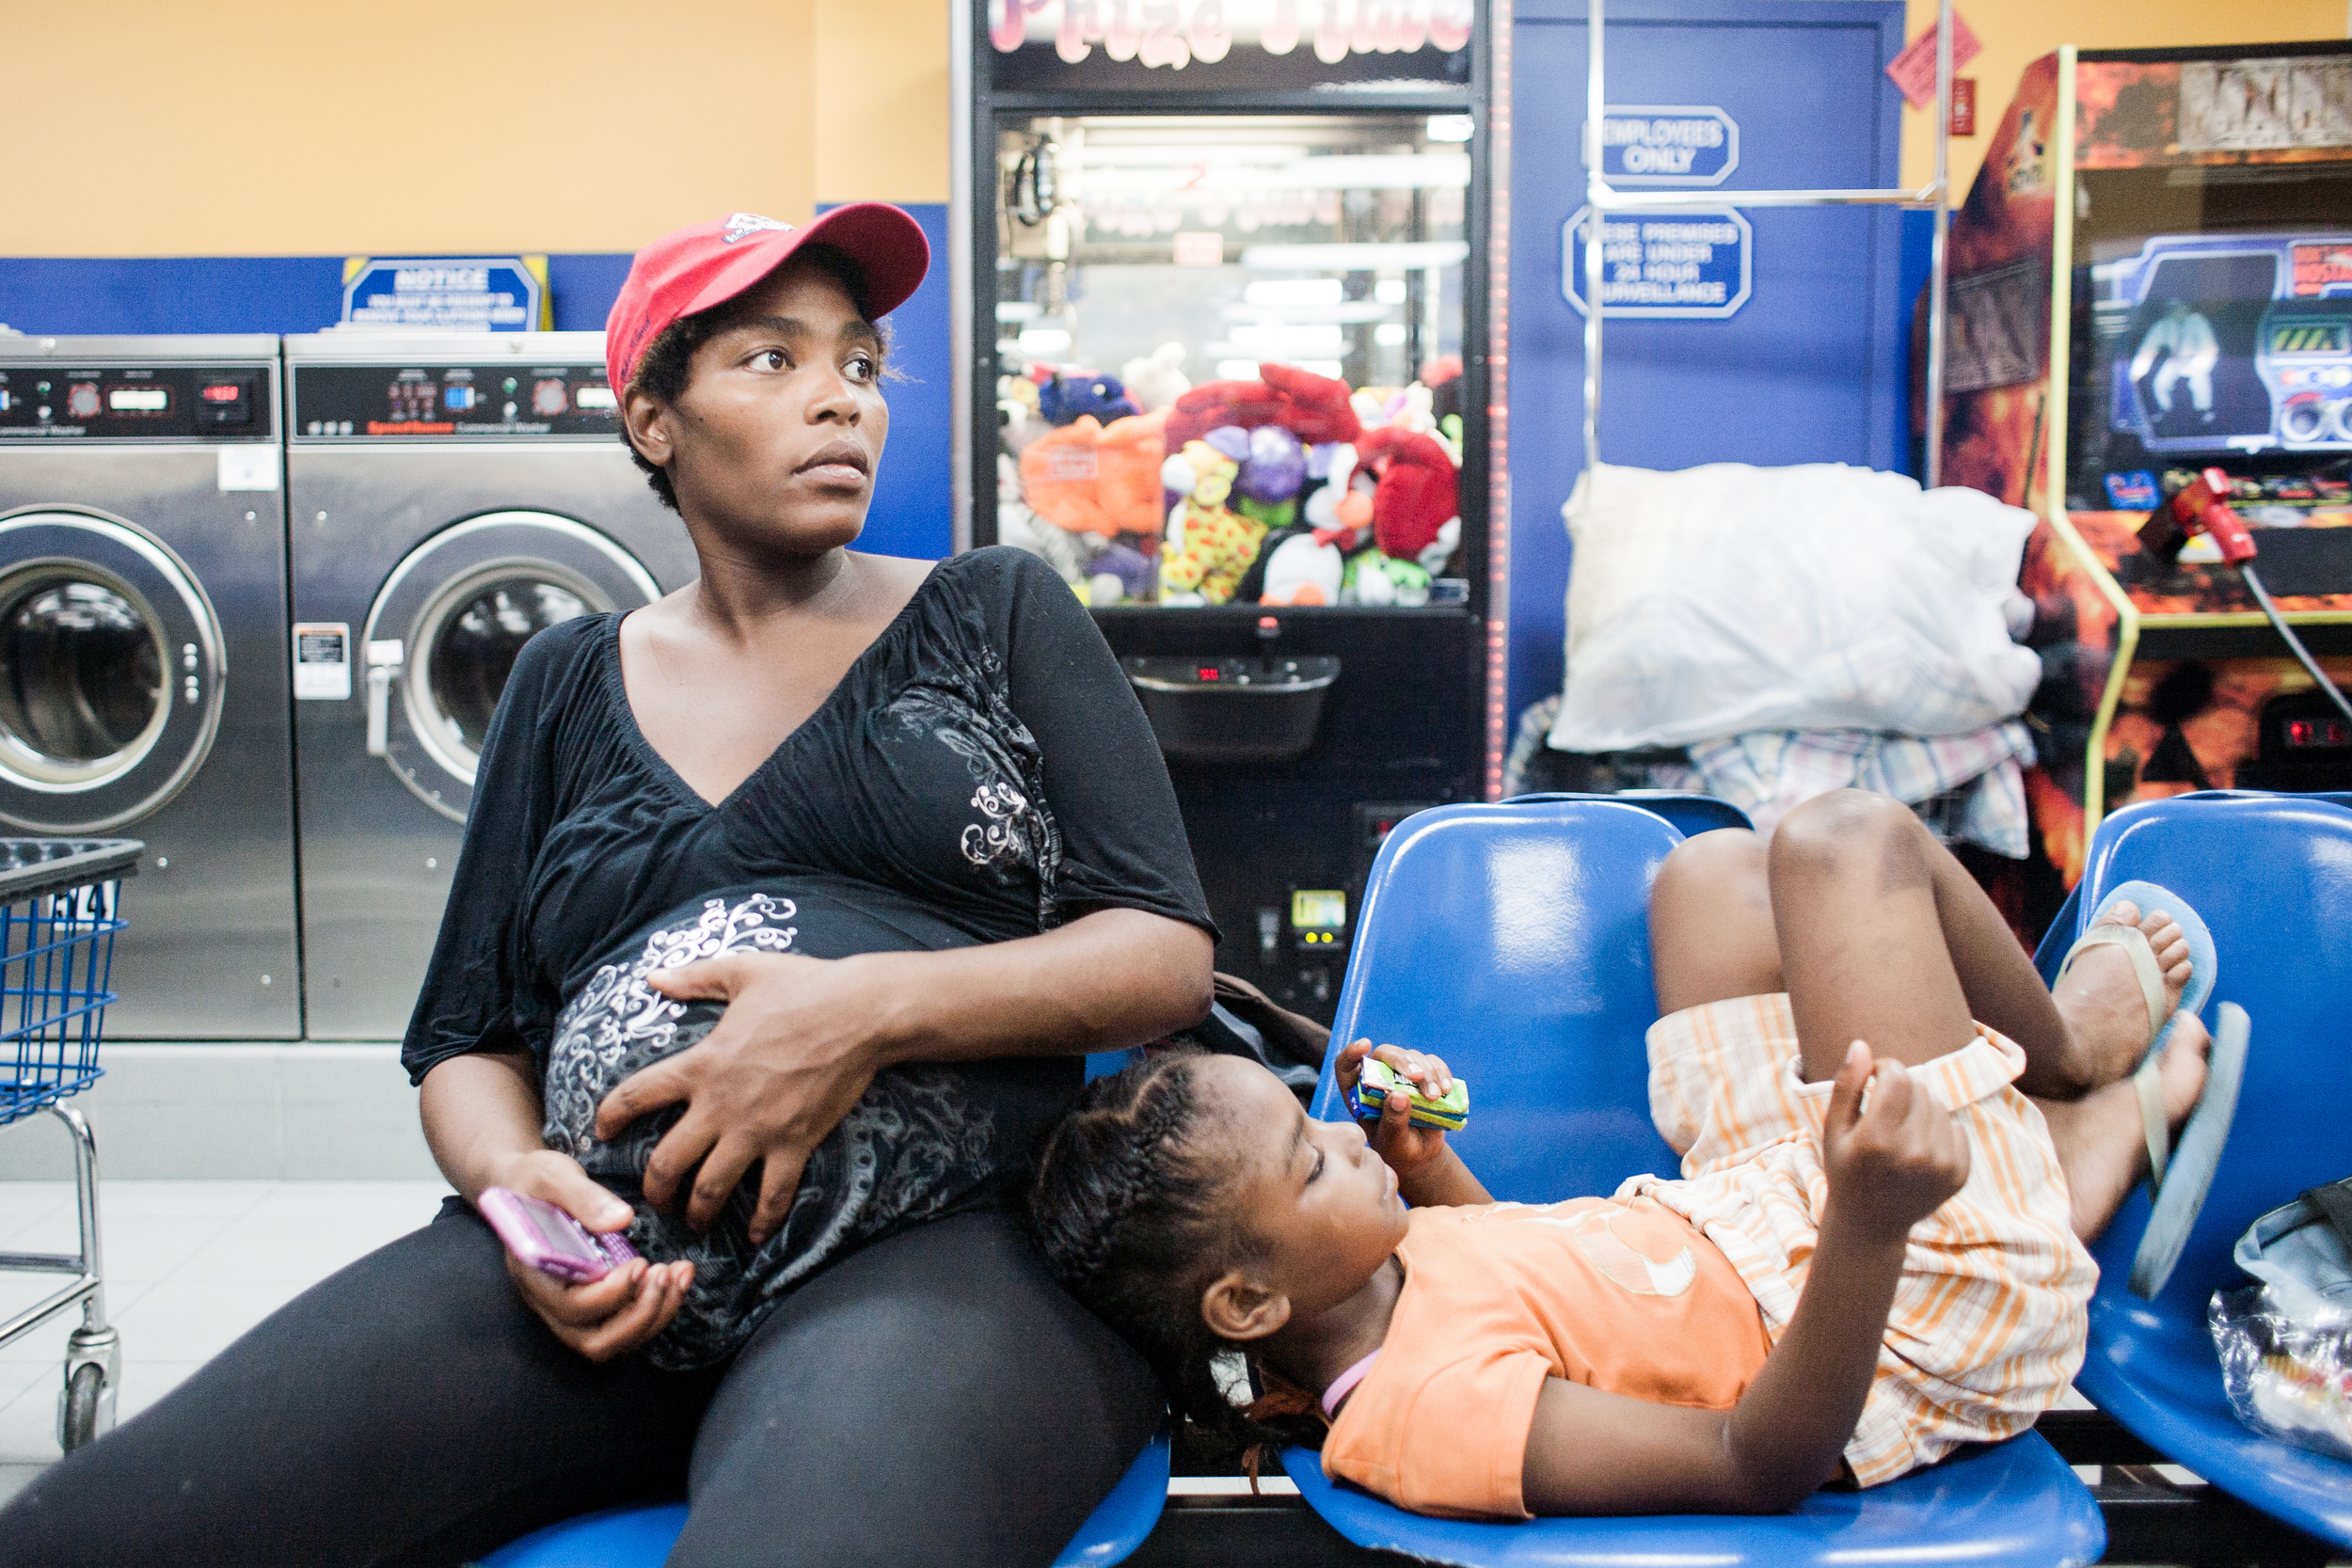 Roberta at the laundromat with Siera, 2010.